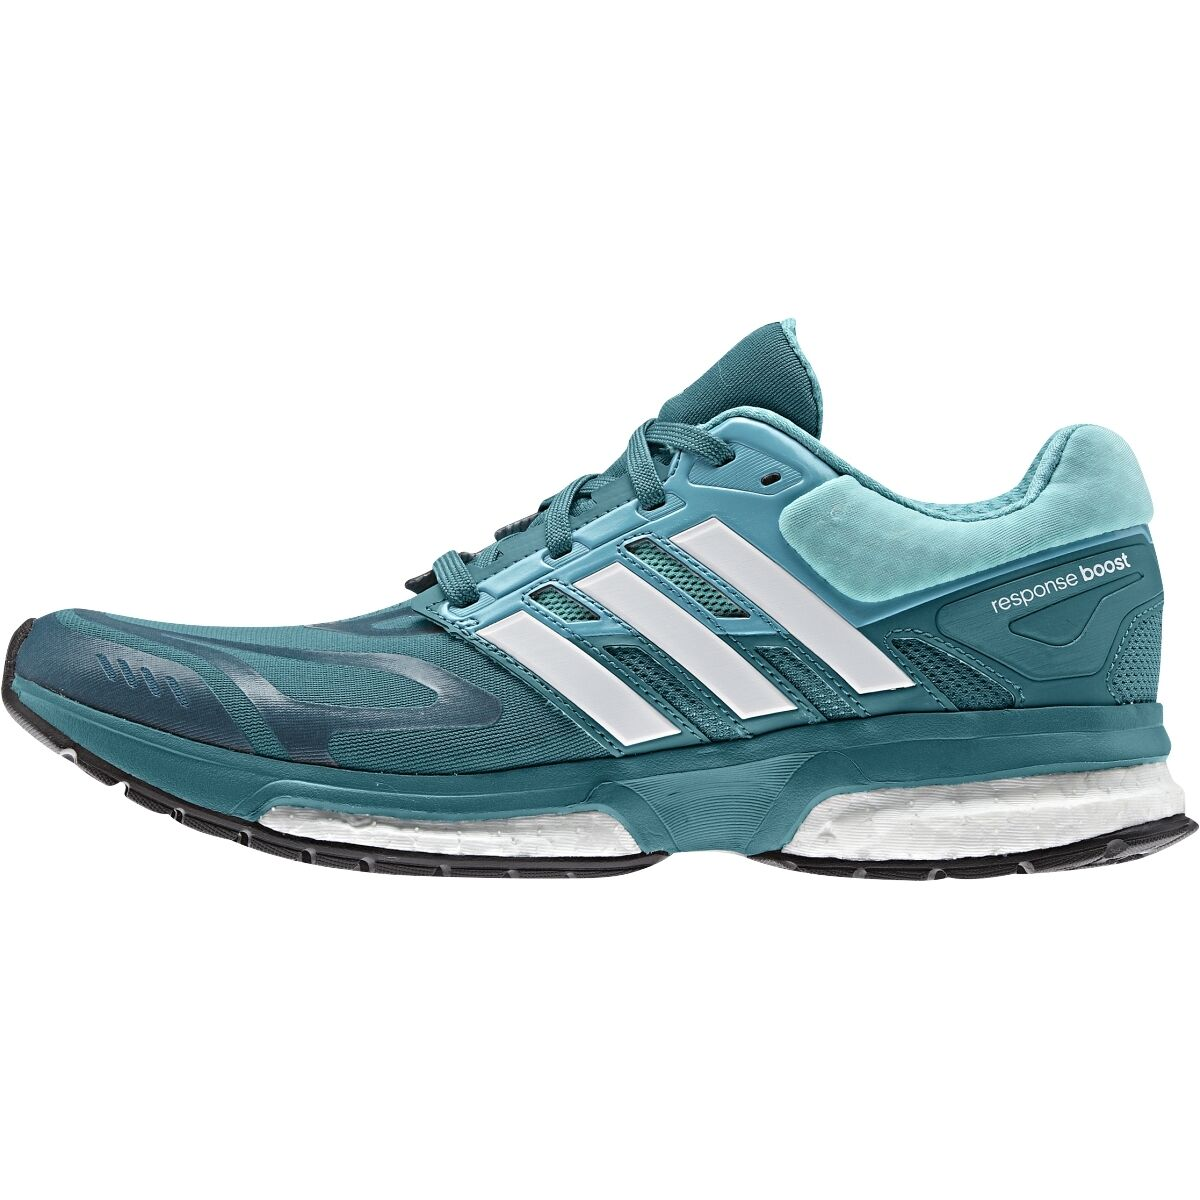 NEWAdidas RESPONSE BOOST TECHFIT TECHFIT TECHFIT Running Energy shoes supernova gymWomens sz 10 3ea038